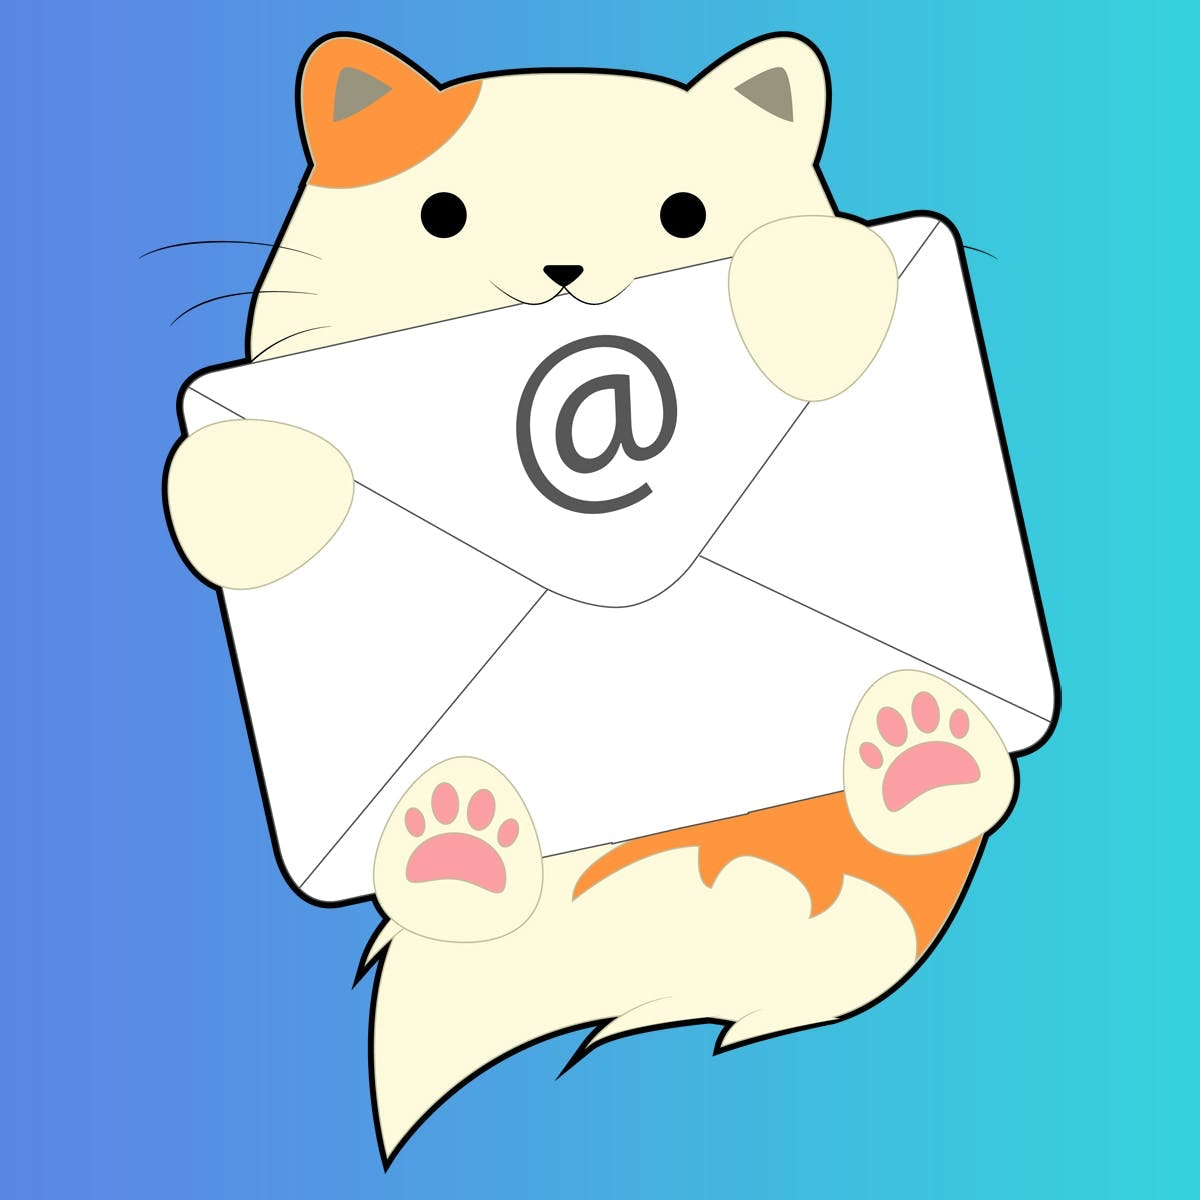 InboxKitten - An open-source, disposable email service